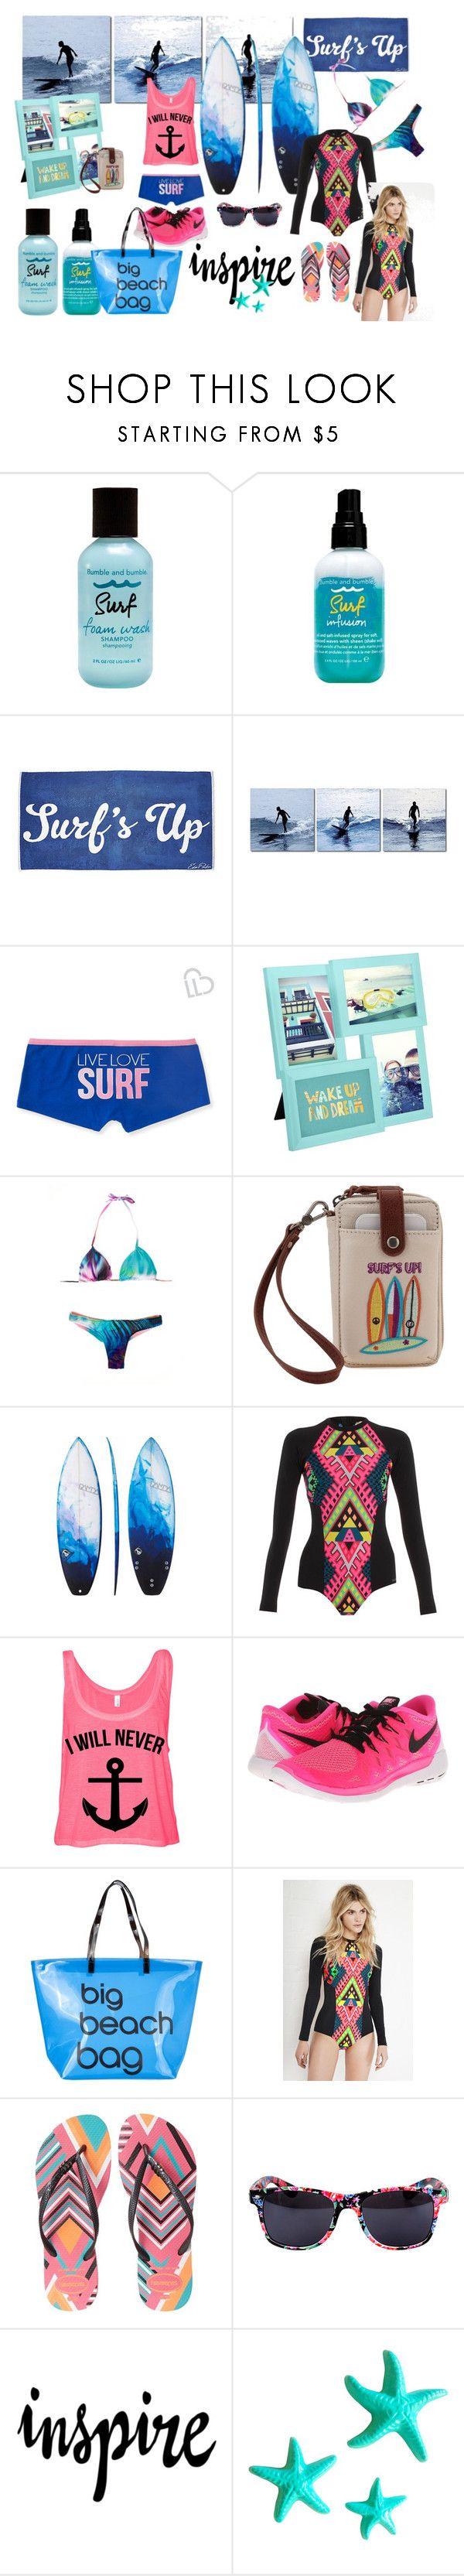 Surf & Turf by iris234 on Polyvore featuring Mara Hoffman, Aéropostale, NIKE, Havaianas, SPURR, The Sak, Bumble and bumble, Umbra and Dot & Bo